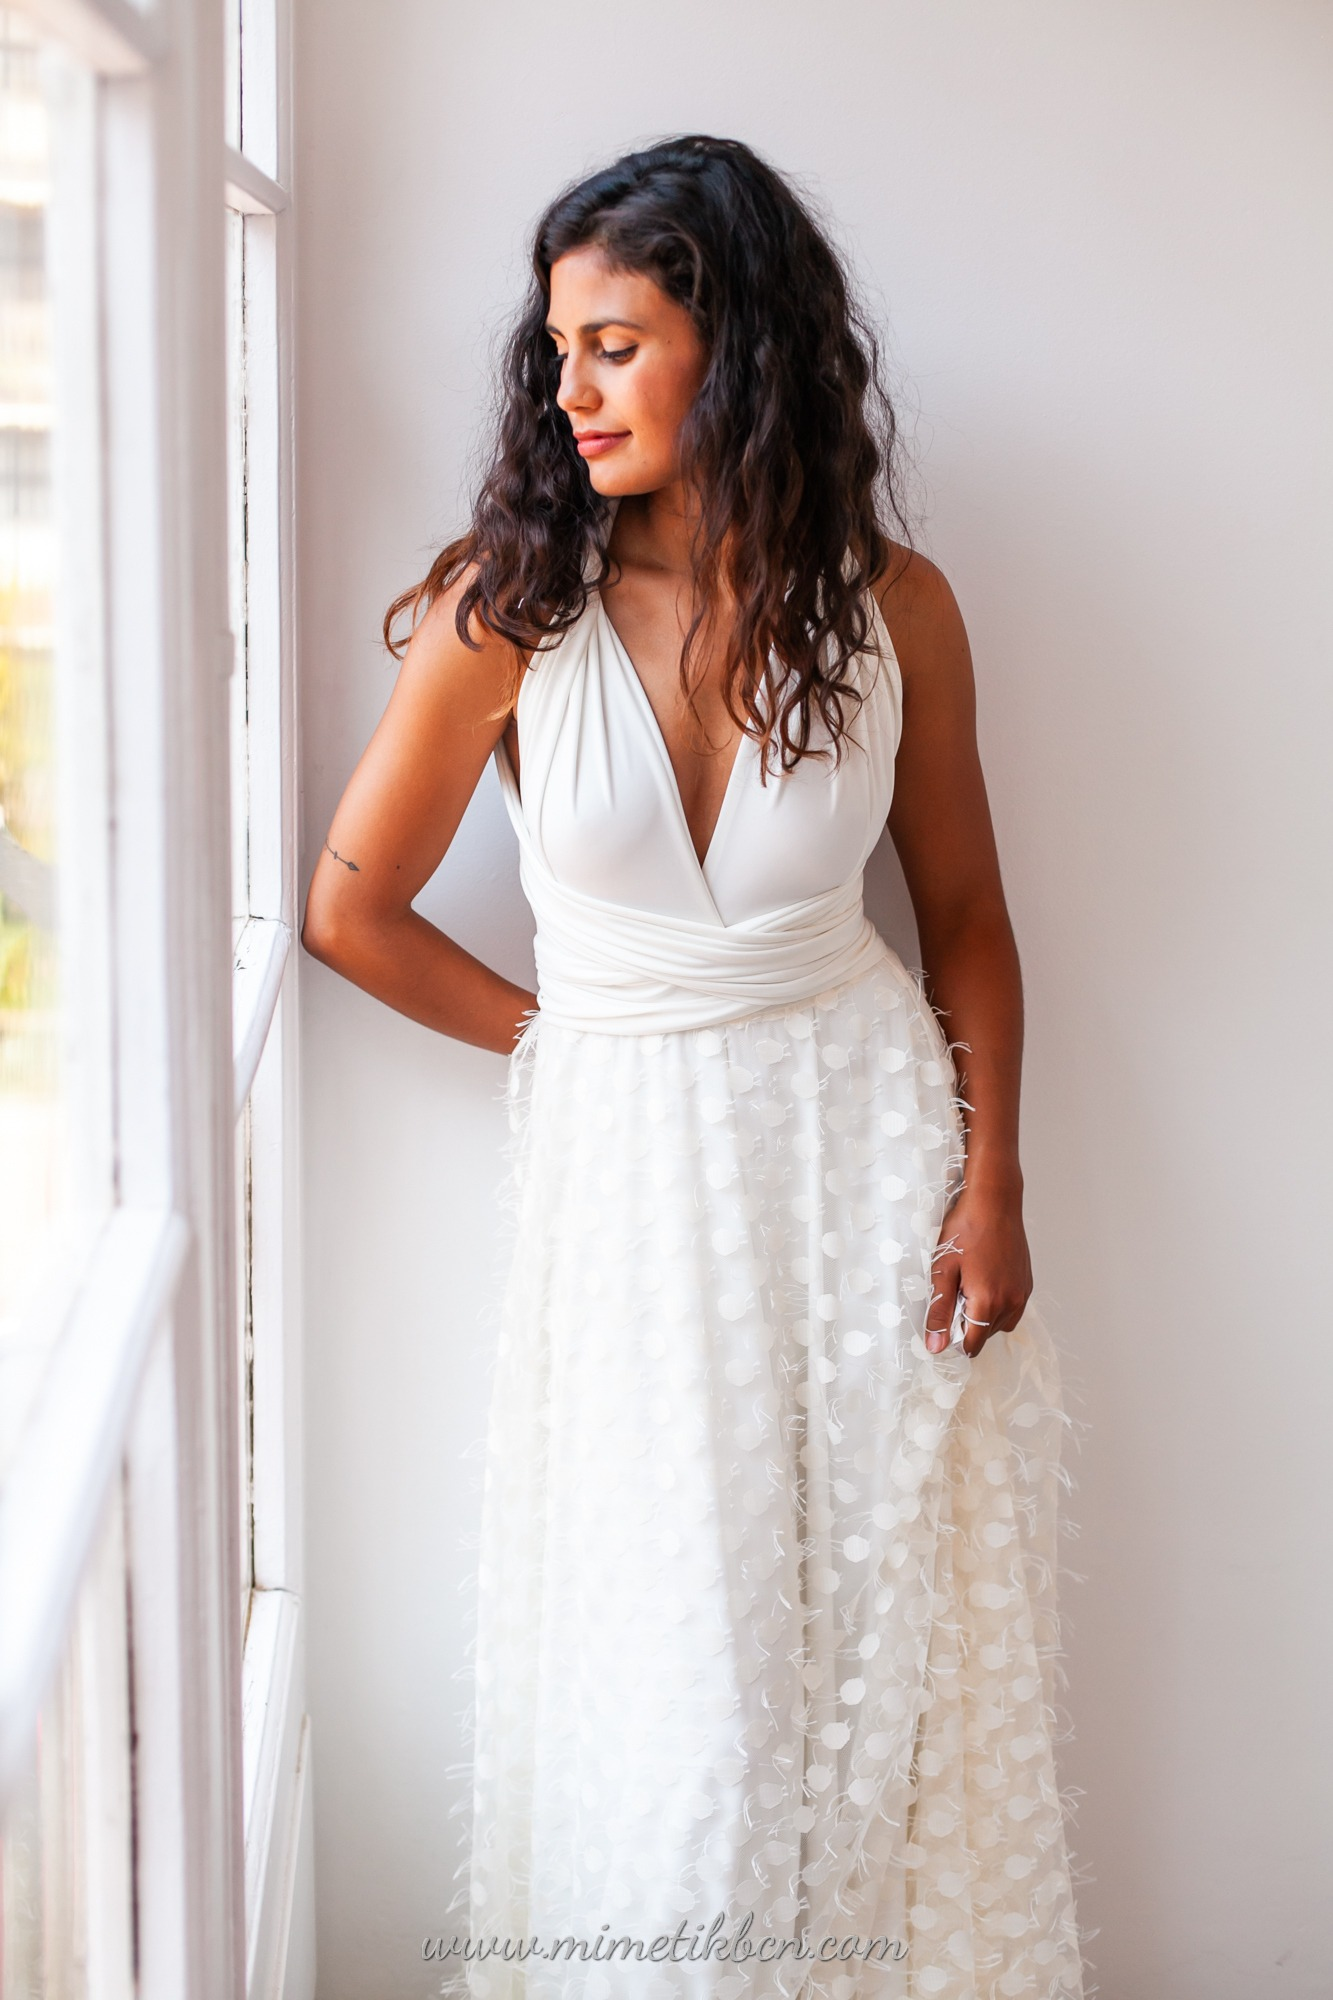 Multiposition wedding dress for the summer